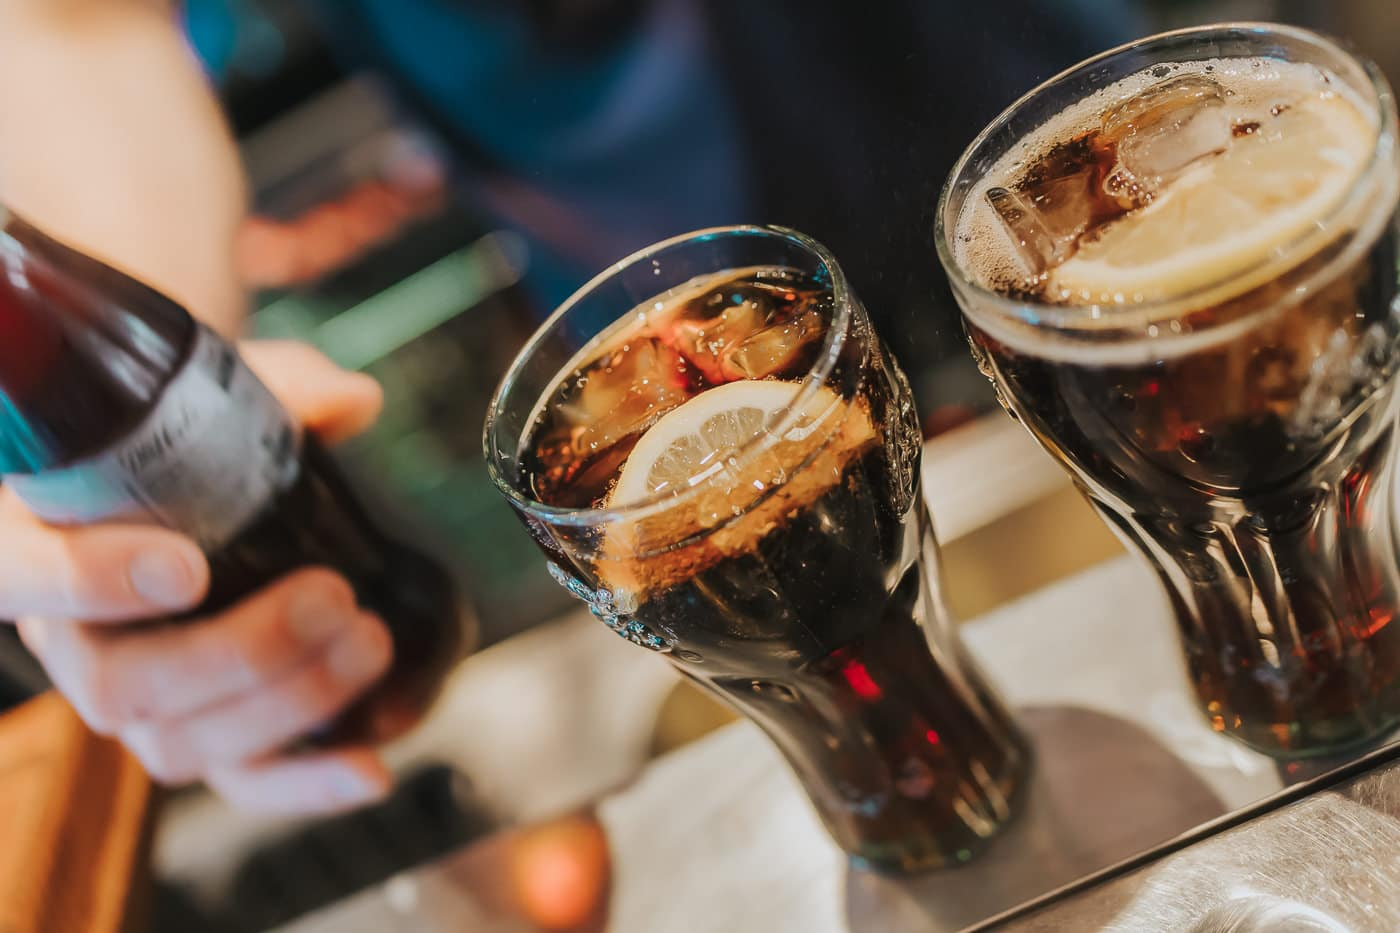 Two glasses of Coke on a bar